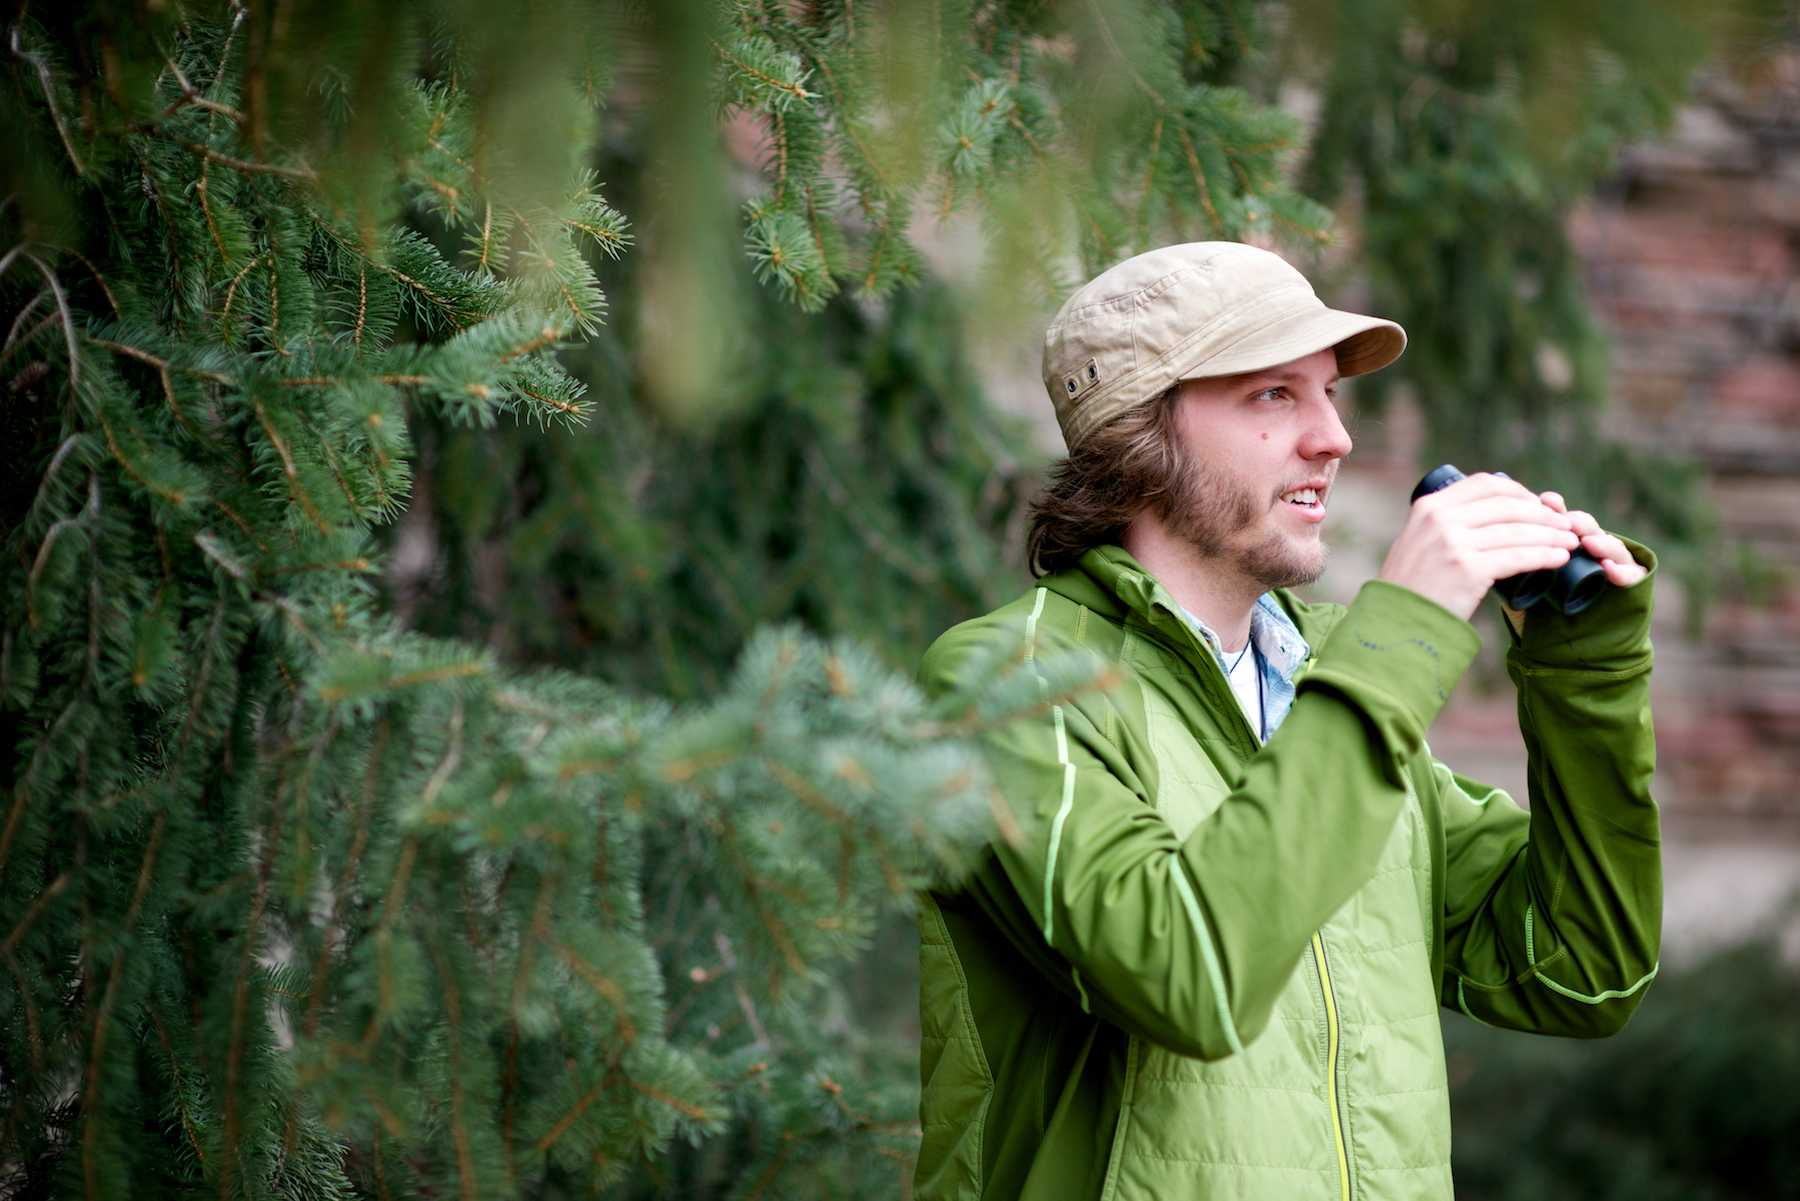 Adam miller, a senior wildlife biology major, uses binoculars to identify birds from their site and call in the Monfort Quadrangle. Miller has been involved in undergraduate research since freshman year and is currently studying how housing development affects bird nesting patterns.